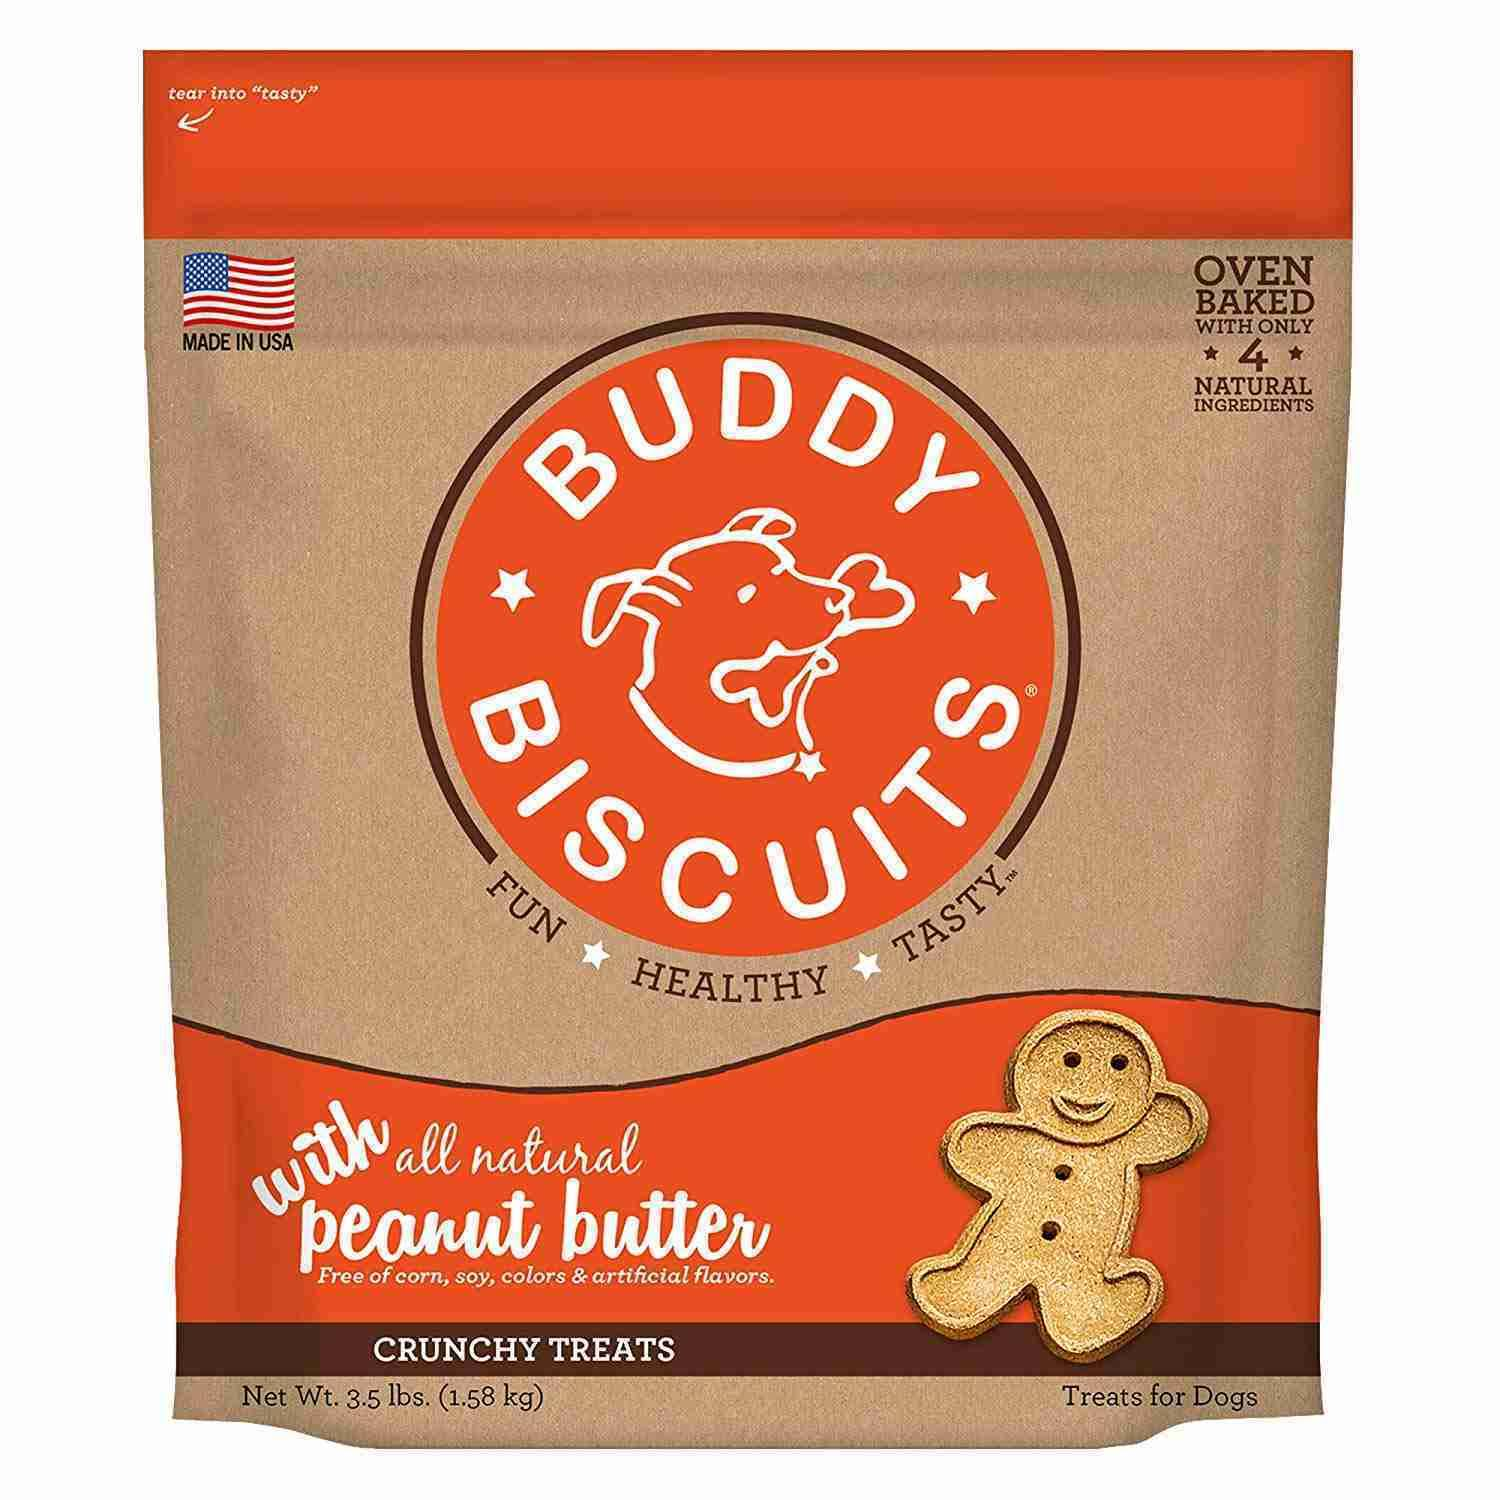 Buddy Biscuits Original Oven Baked Crunchy Treats Peanut Butter 3.5lbs